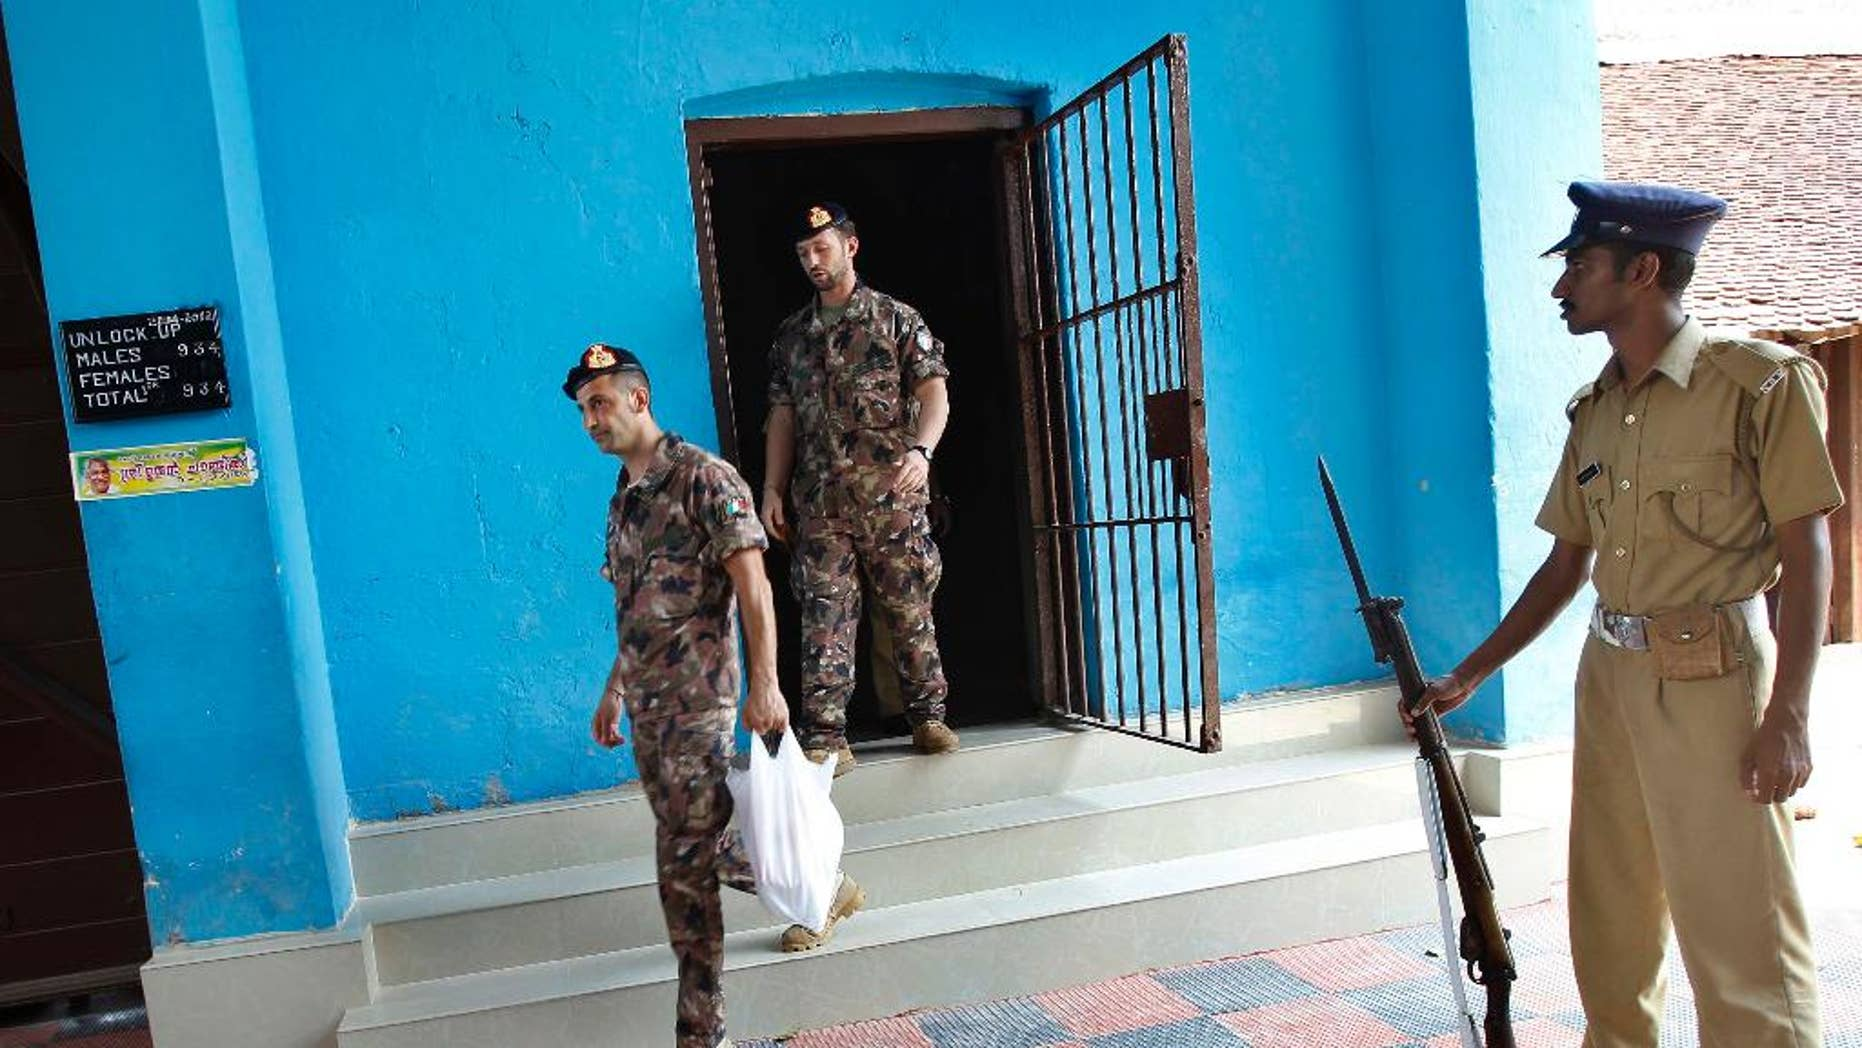 FILE- In this April 22, 2012 file photo, an Indian policeman stands guard as Italian marines Massimiliano Latorre, left, and Salvatore Girone, center, walk to enter main premises of the central prison, where they were then detained in Trivandrum, India. India's top court turns down travel appeals by two Italian marines accused of killing two Indian fishermen in 2012.The Supreme Court on Tuesday, Dec.16, 2014 denied Massimiliano Latorre permission to remain in his country for two more months. (AP Photo/Aijaz Rahi, file)